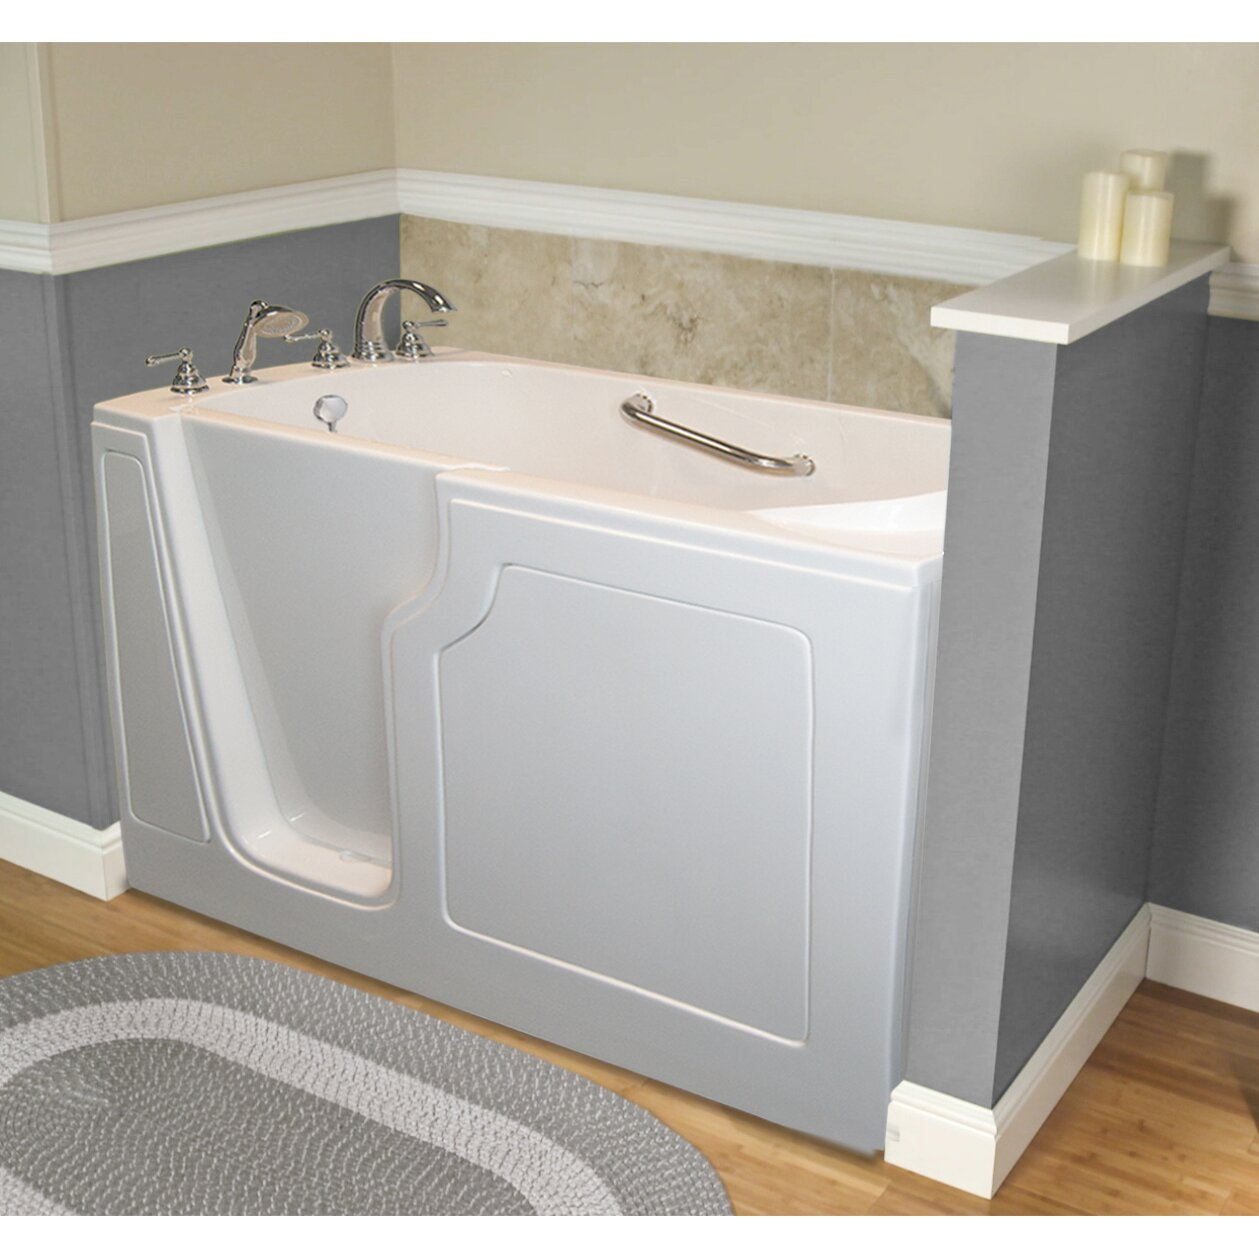 Dignity 48 X 28 Whirlpool Jetted Walk In Bathtub Wayfair